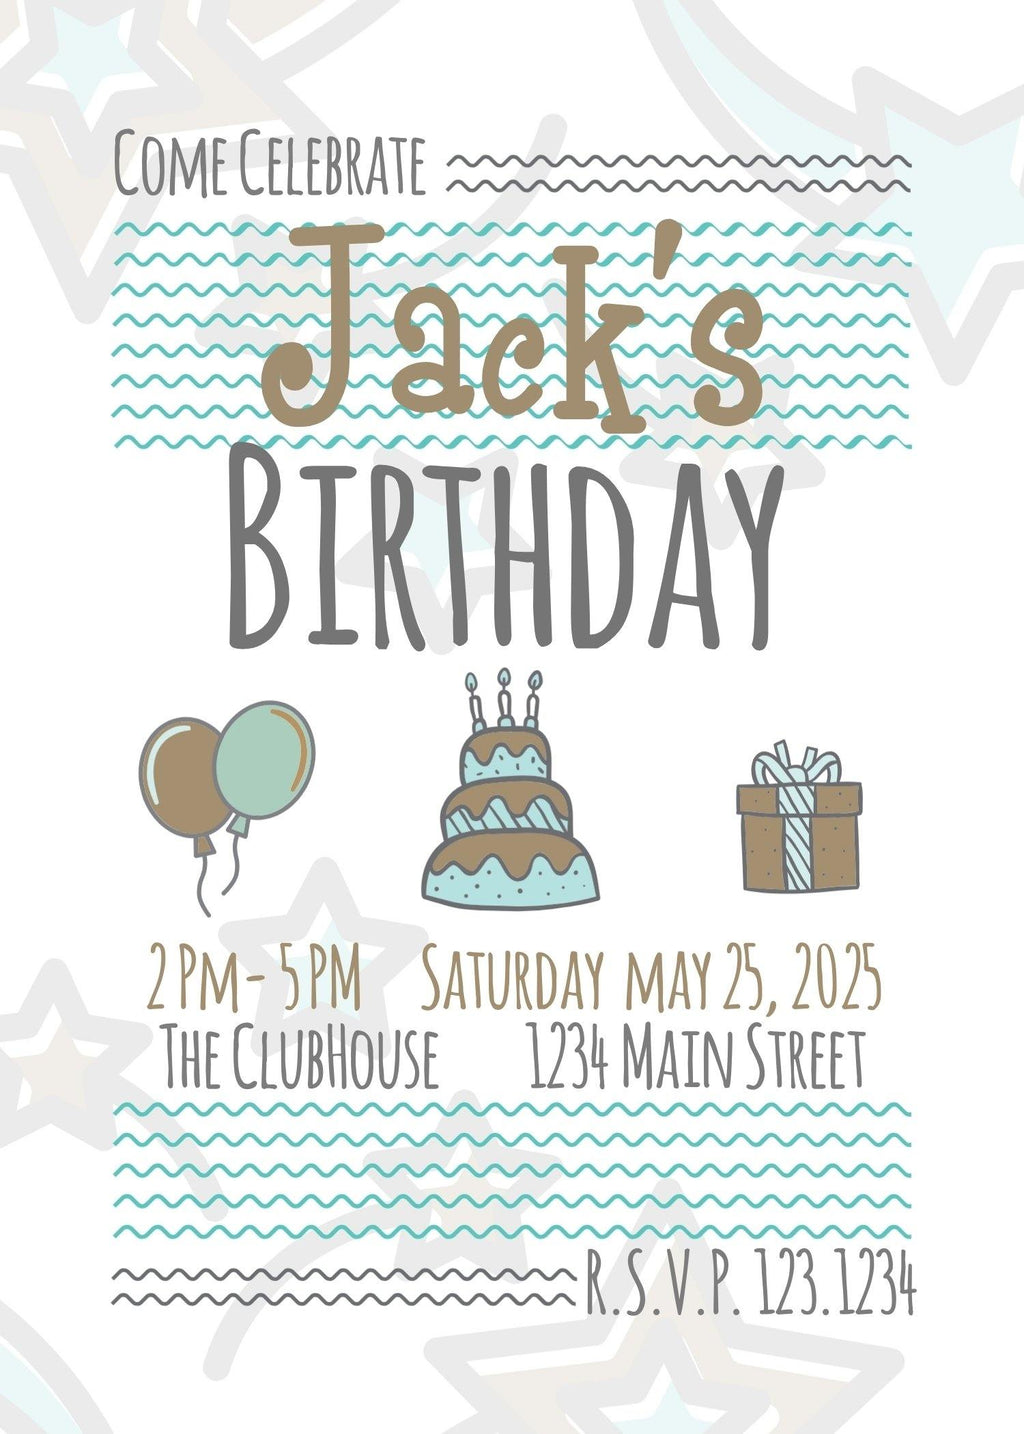 Starry Birthday Invitation (Editable Download) - sunny-jar-designs